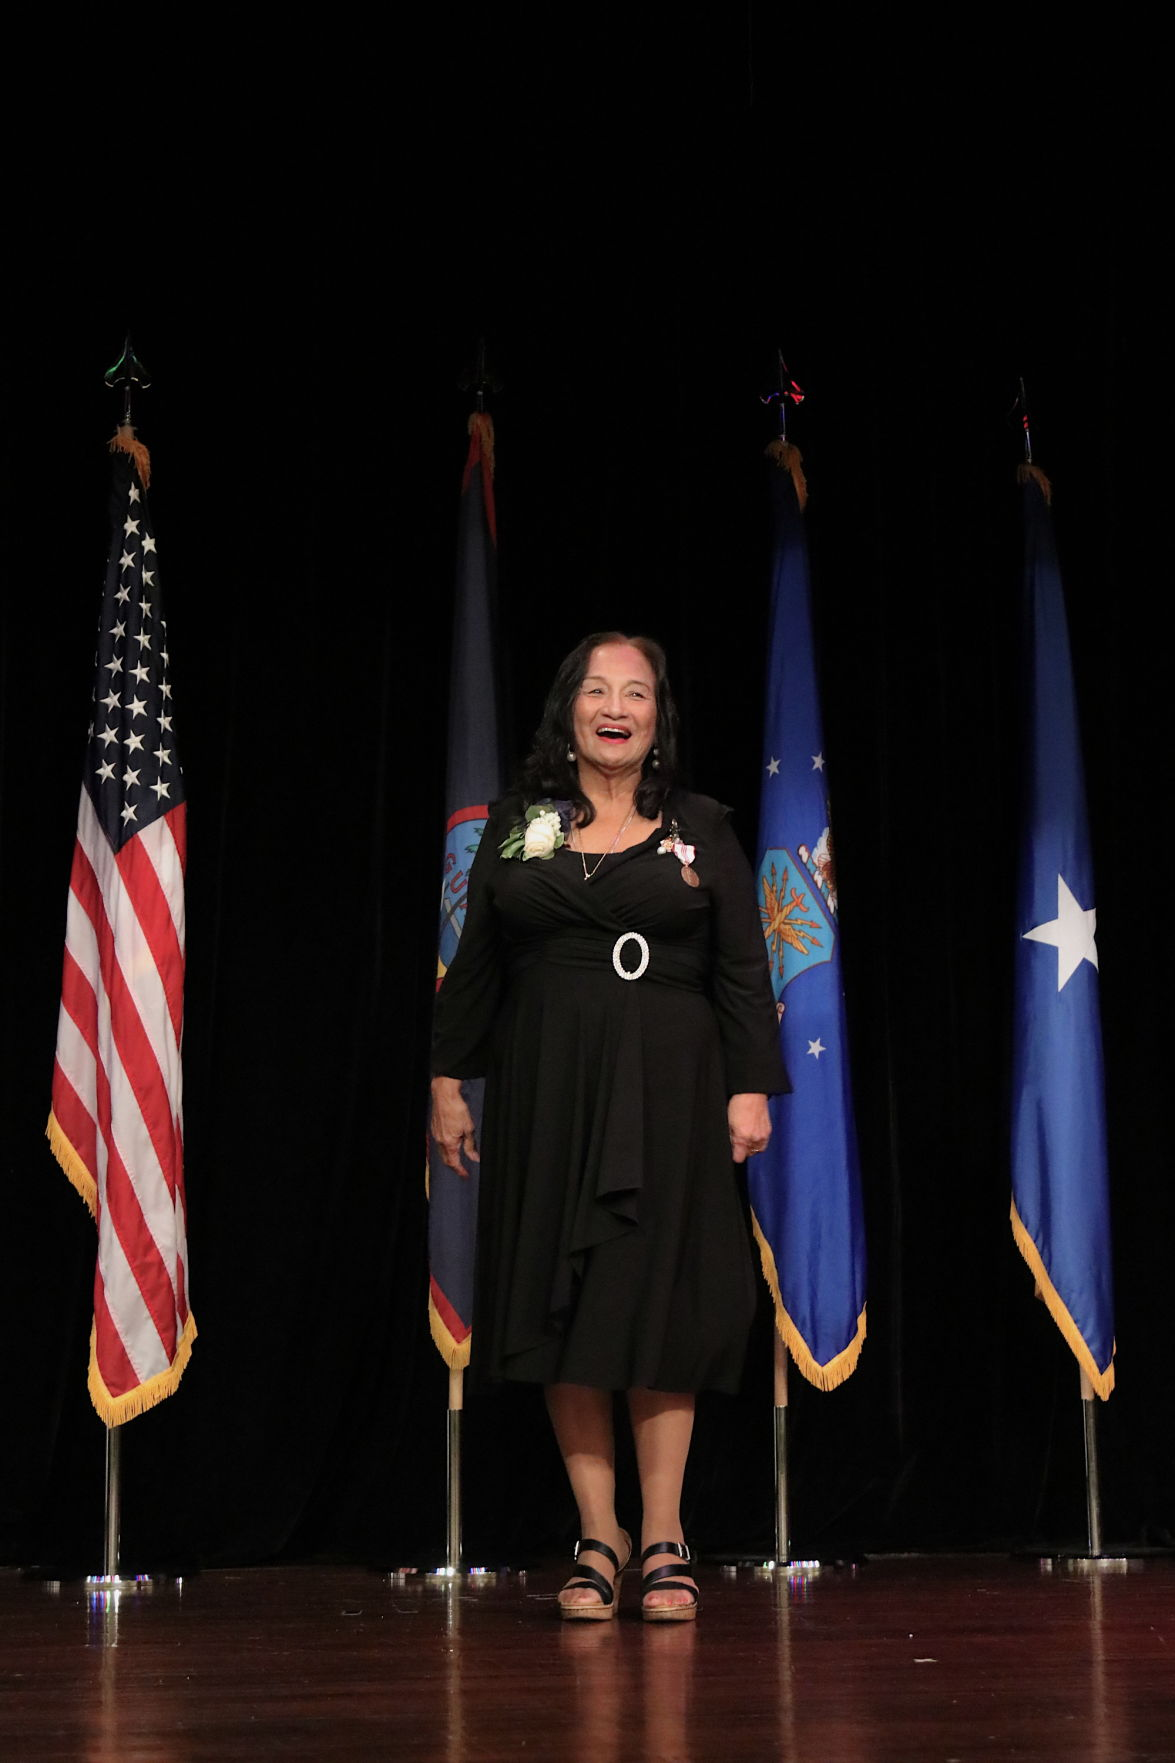 Air Force honors Martratt for life's work